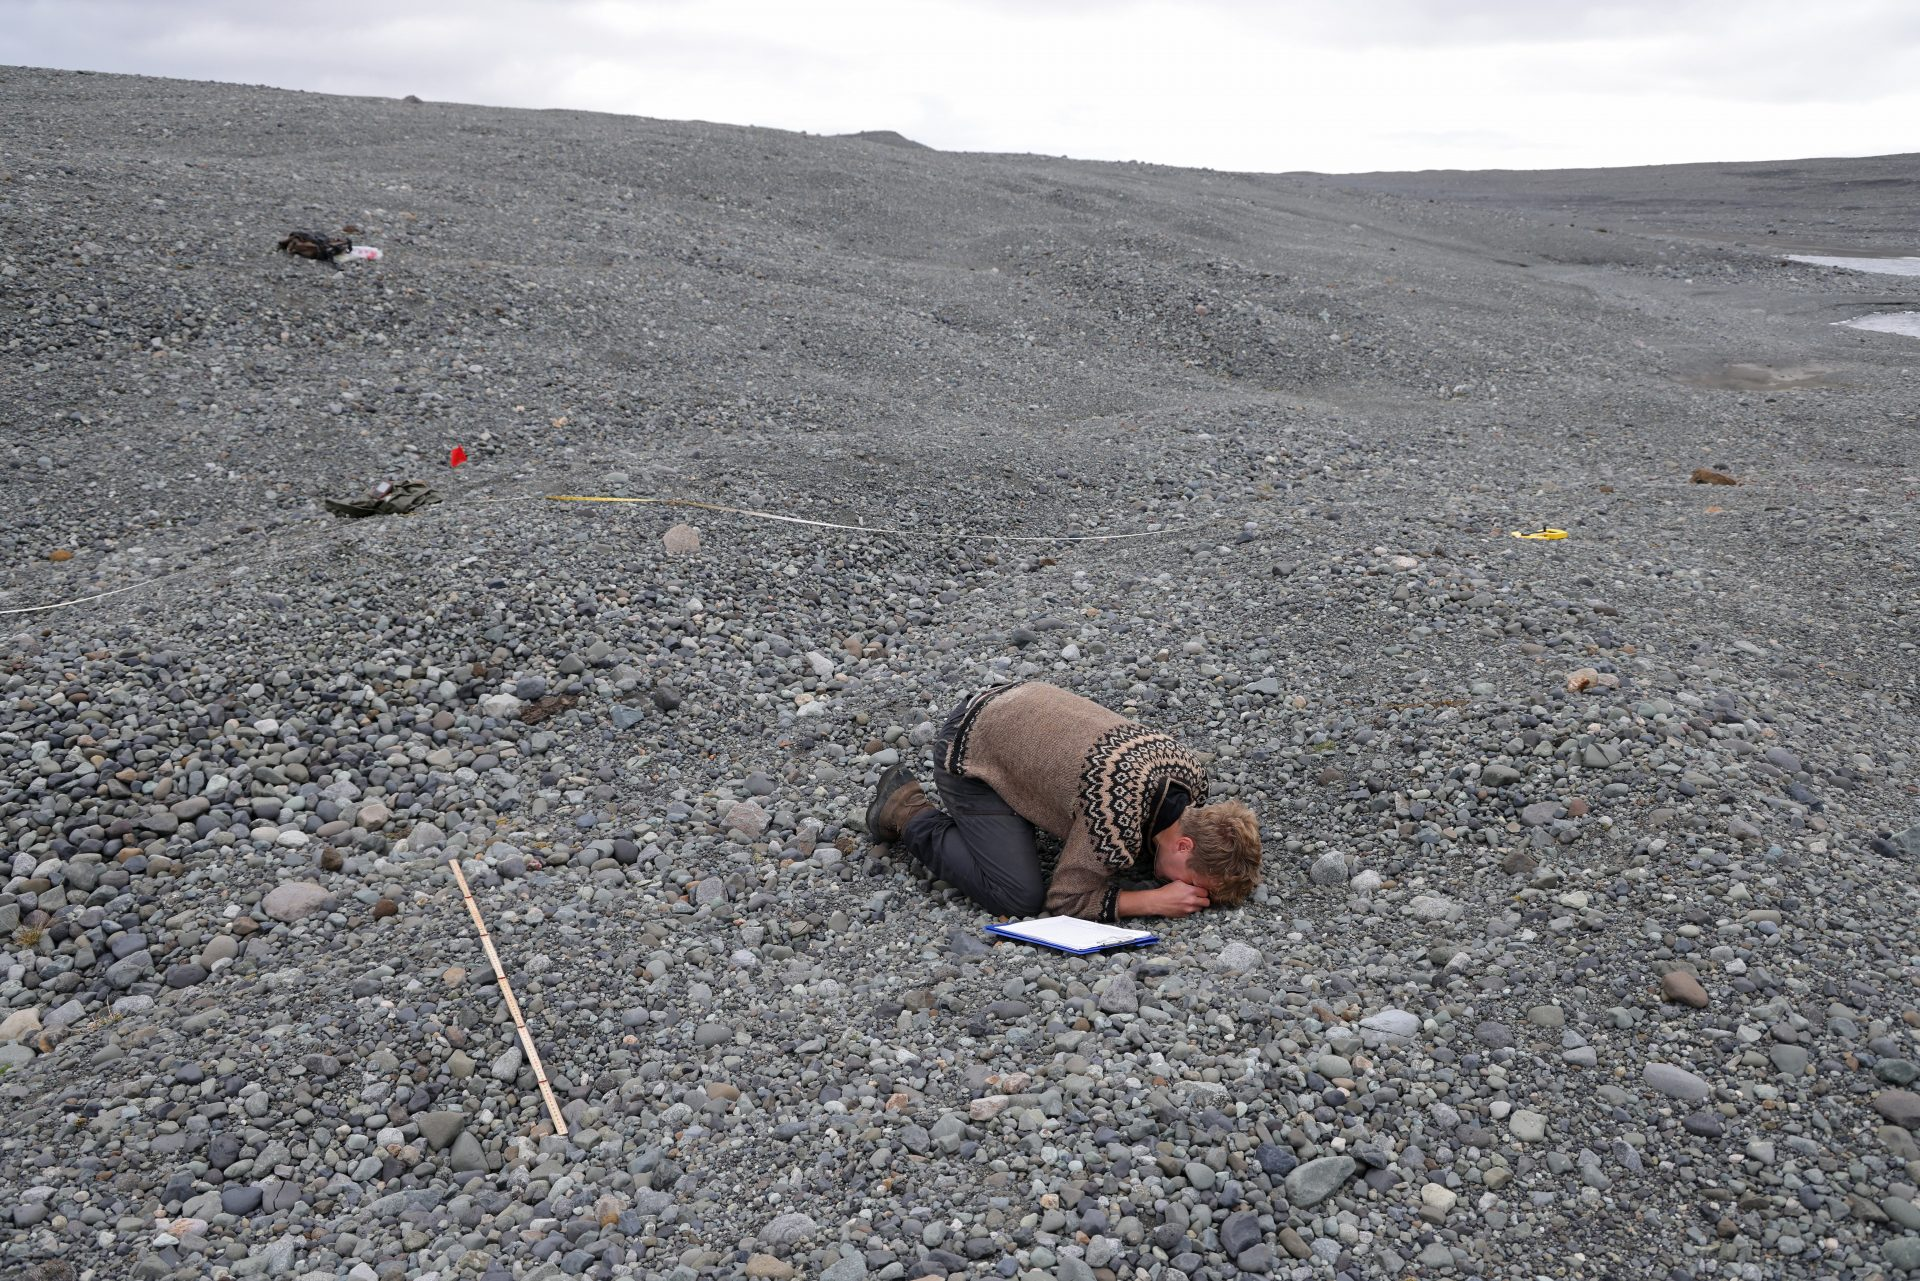 Hlynur Steinsson uses a magnifying glass to examine a tiny plant growing on mostly barren and gravel-covered land left behind by the receding Breidamerkurjokull glacier near Hof, Iceland. Photo: Sean Gallup/Getty Images.